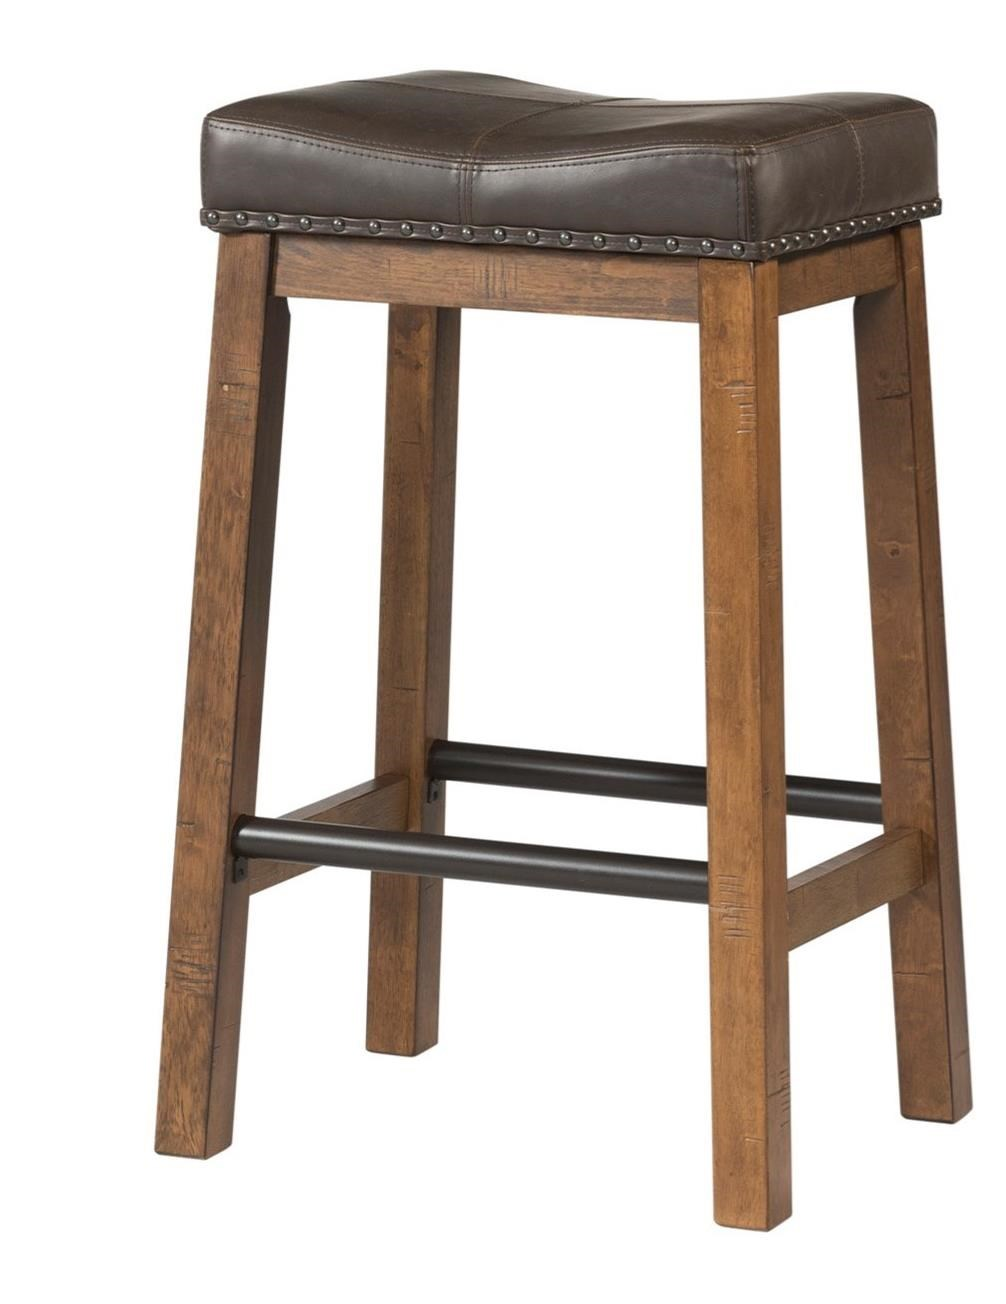 Upholstered Bar Chairs Taos Rustic 30